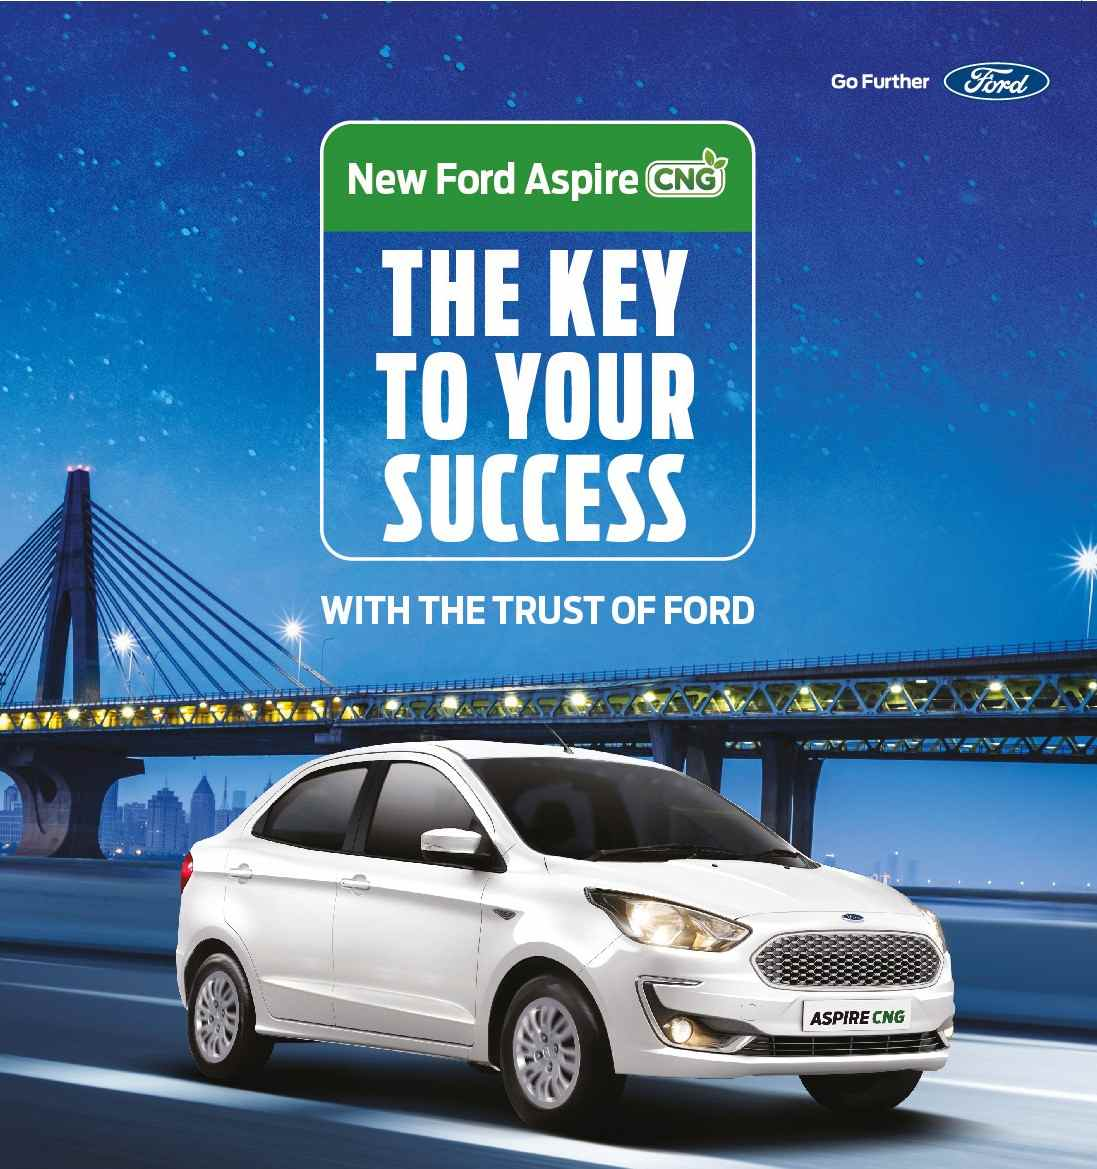 FORD ASPIRE CNG Launch